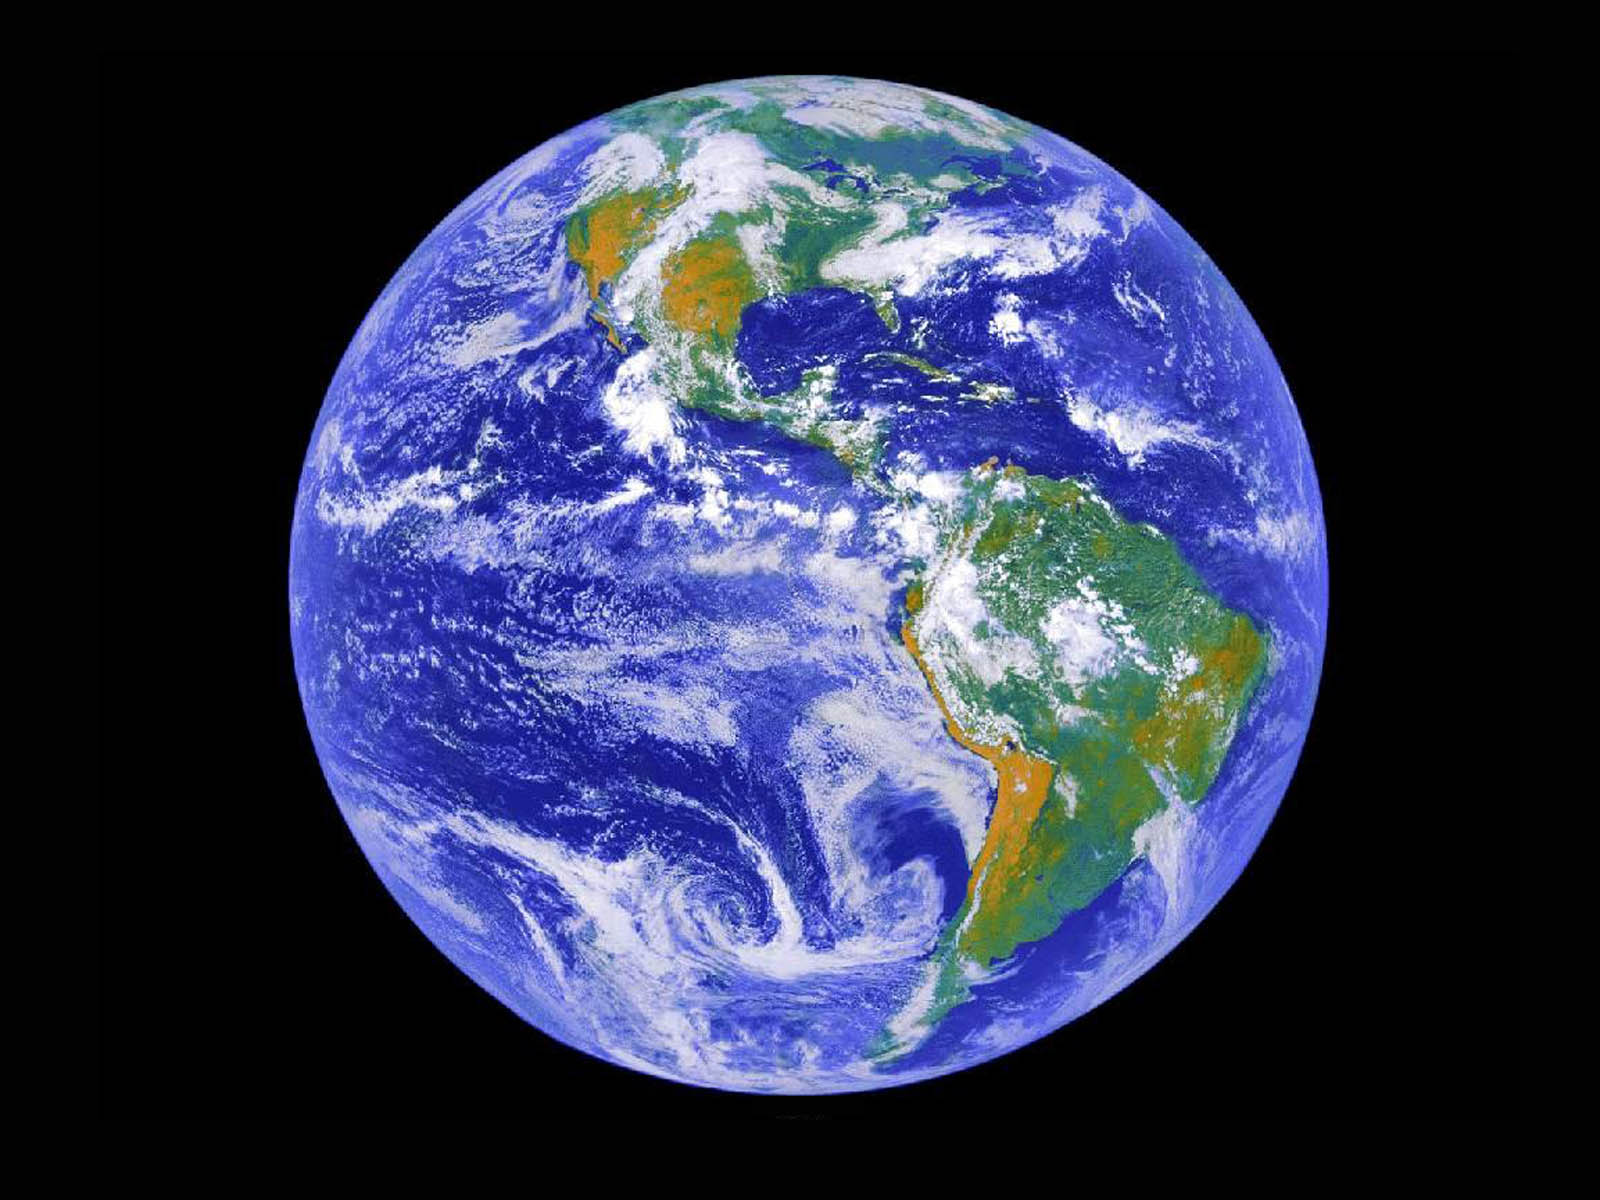 Tag Planet Earth Wallpapers Images Photos Pictures and Backgrounds 1600x1200